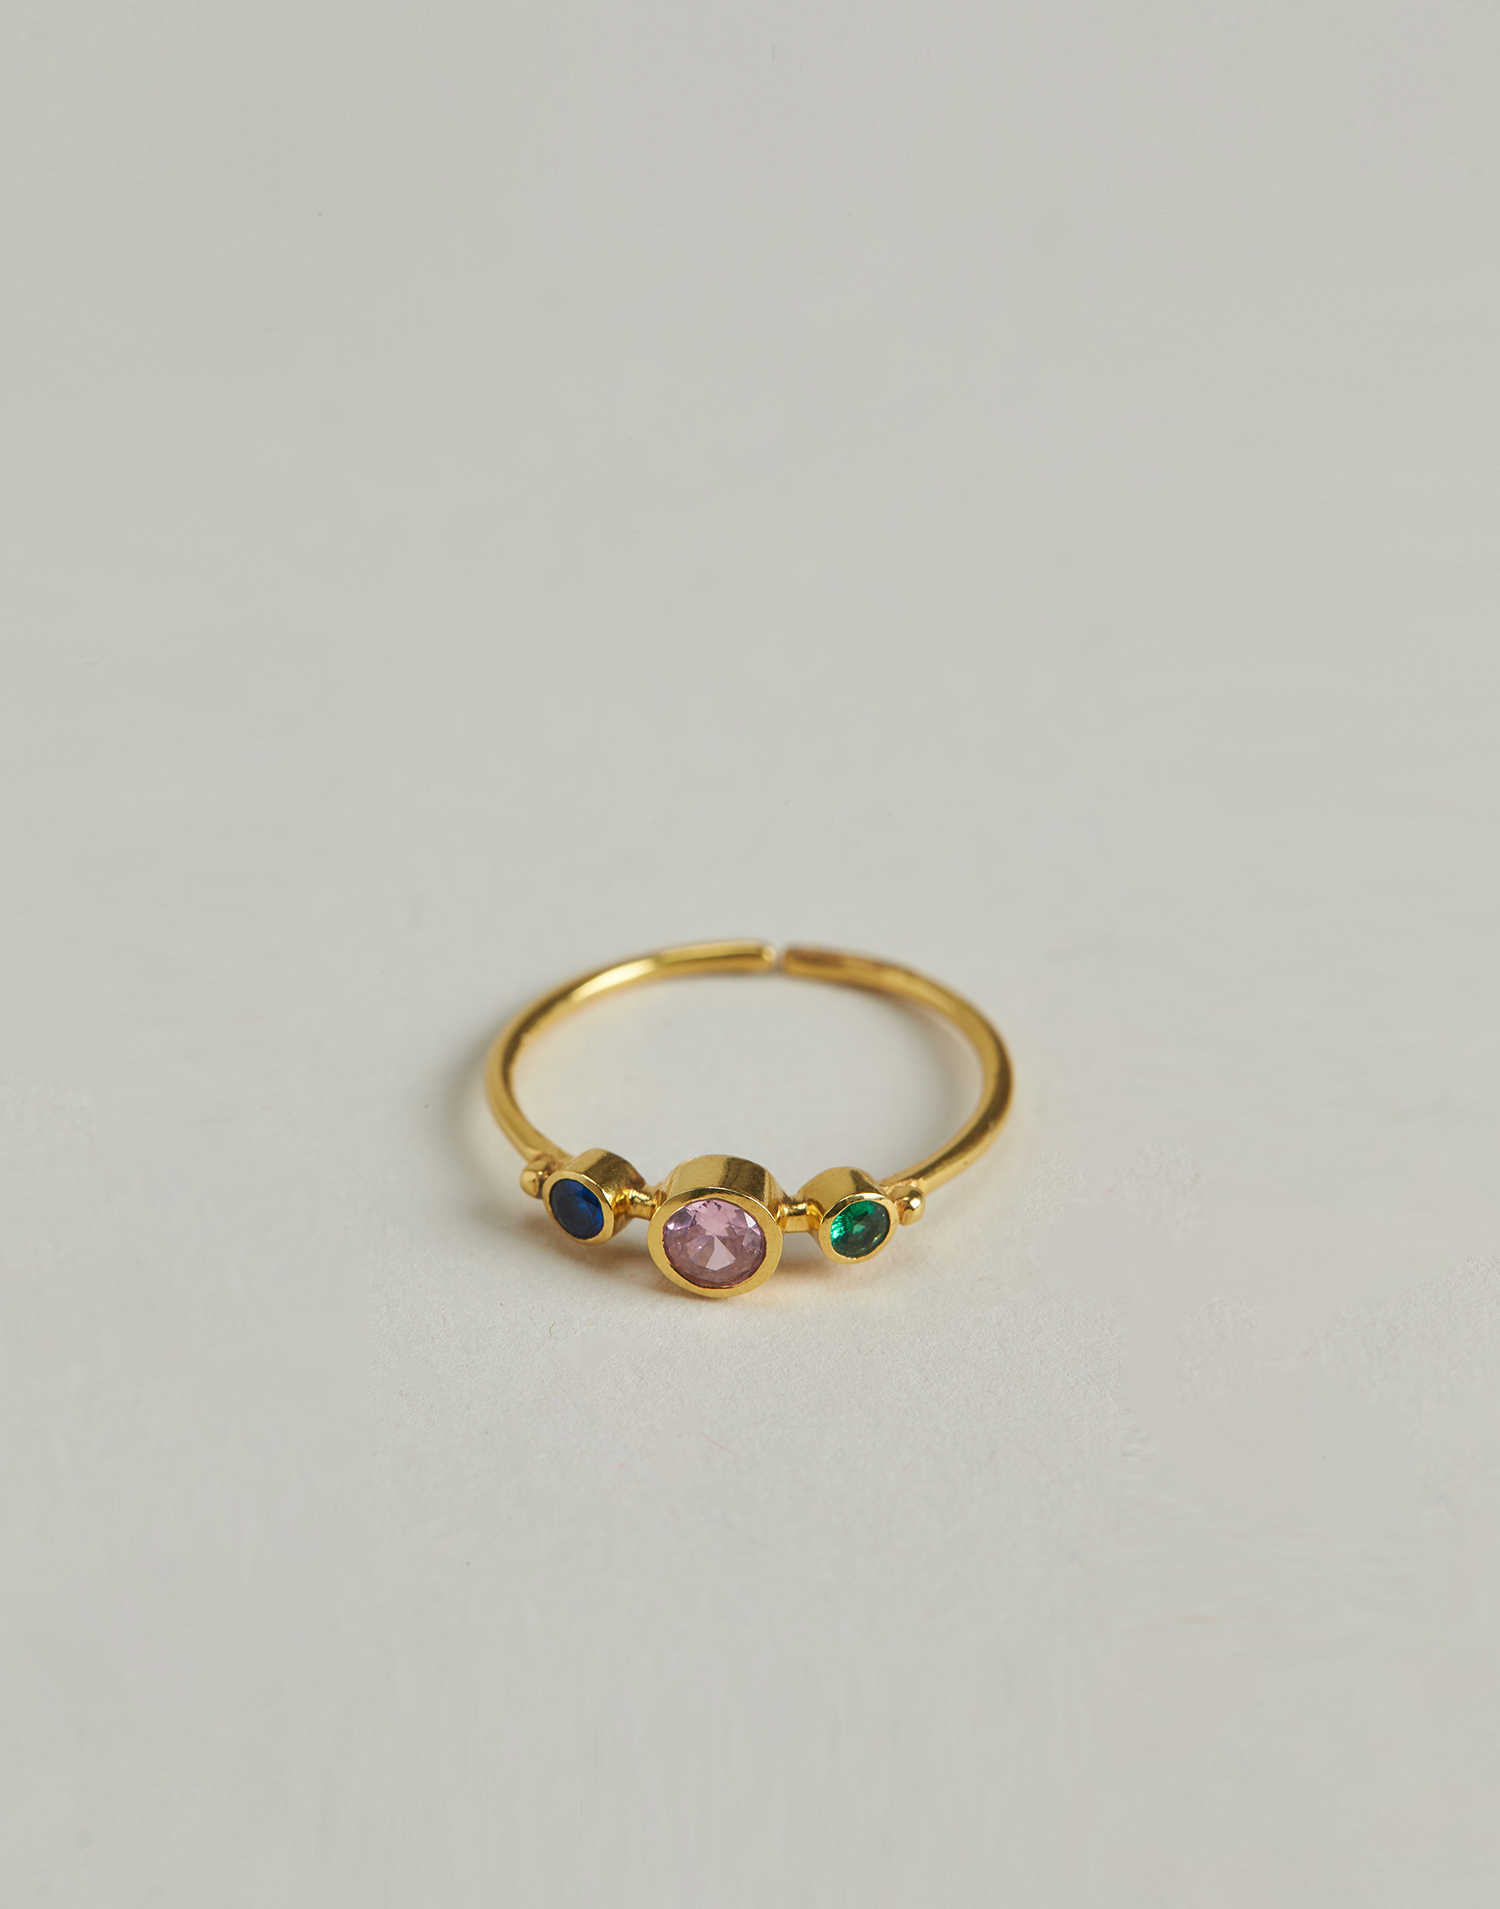 Gilded ring with irregular stones